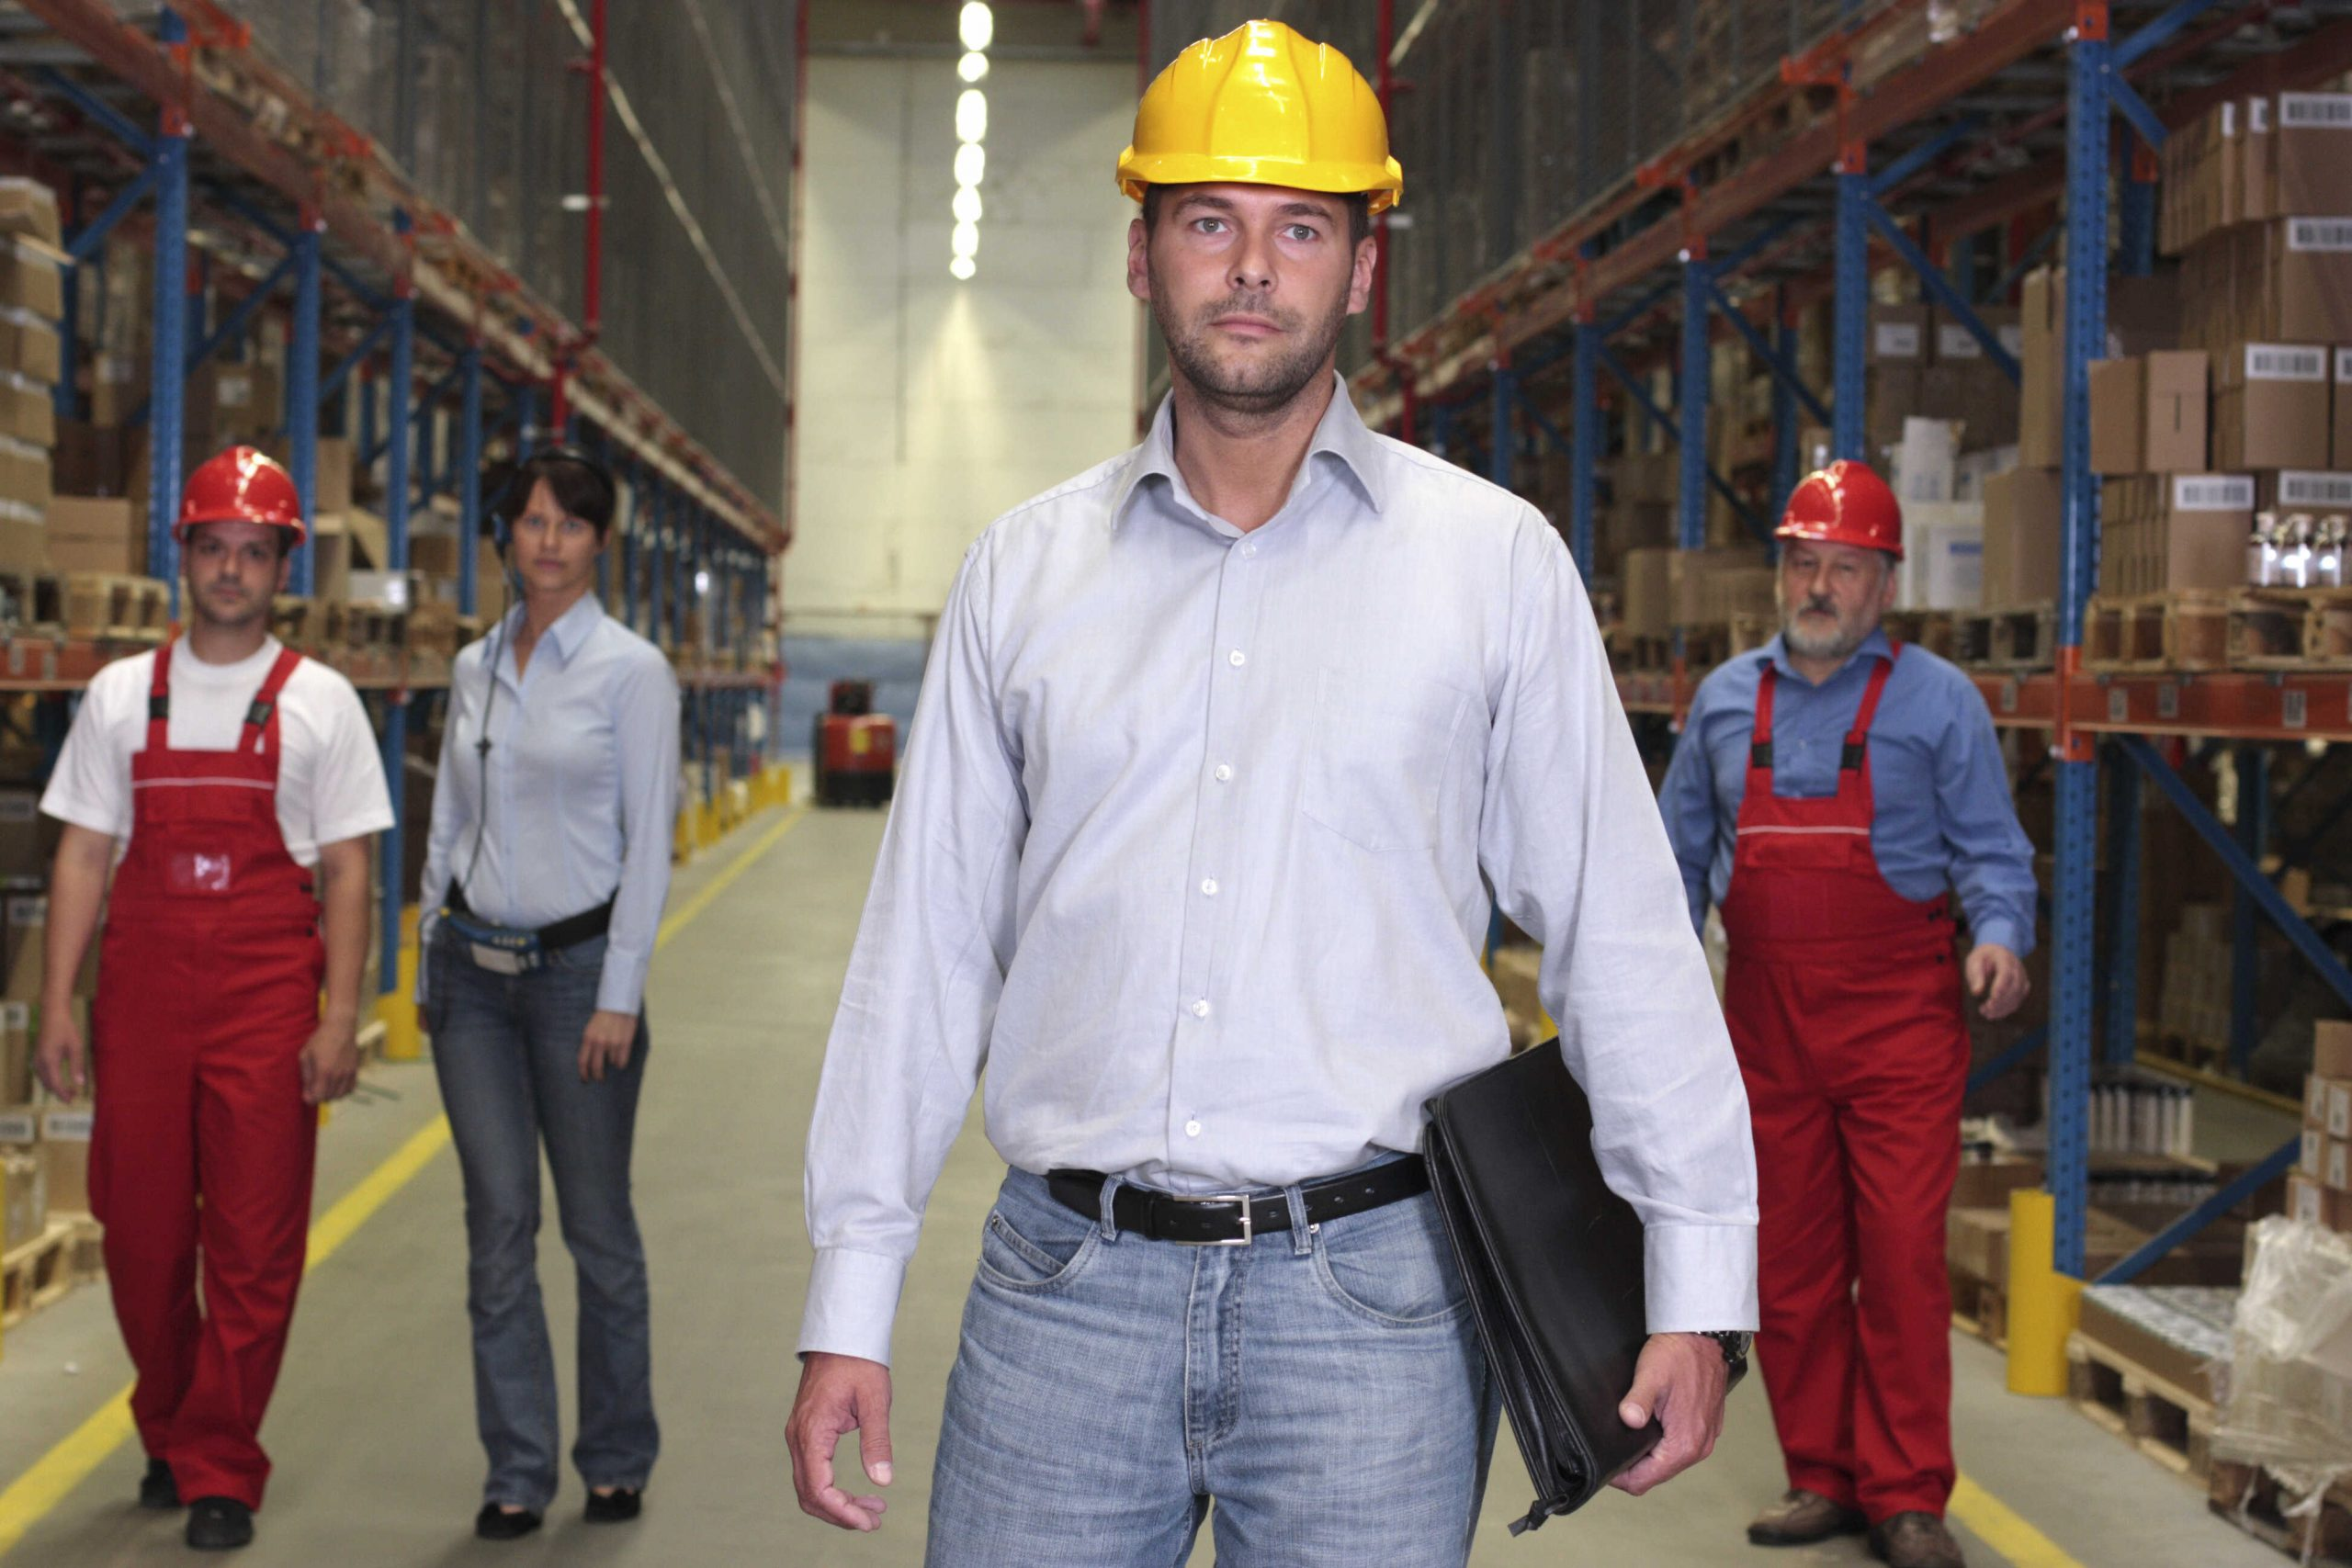 Warehouse leader with crew